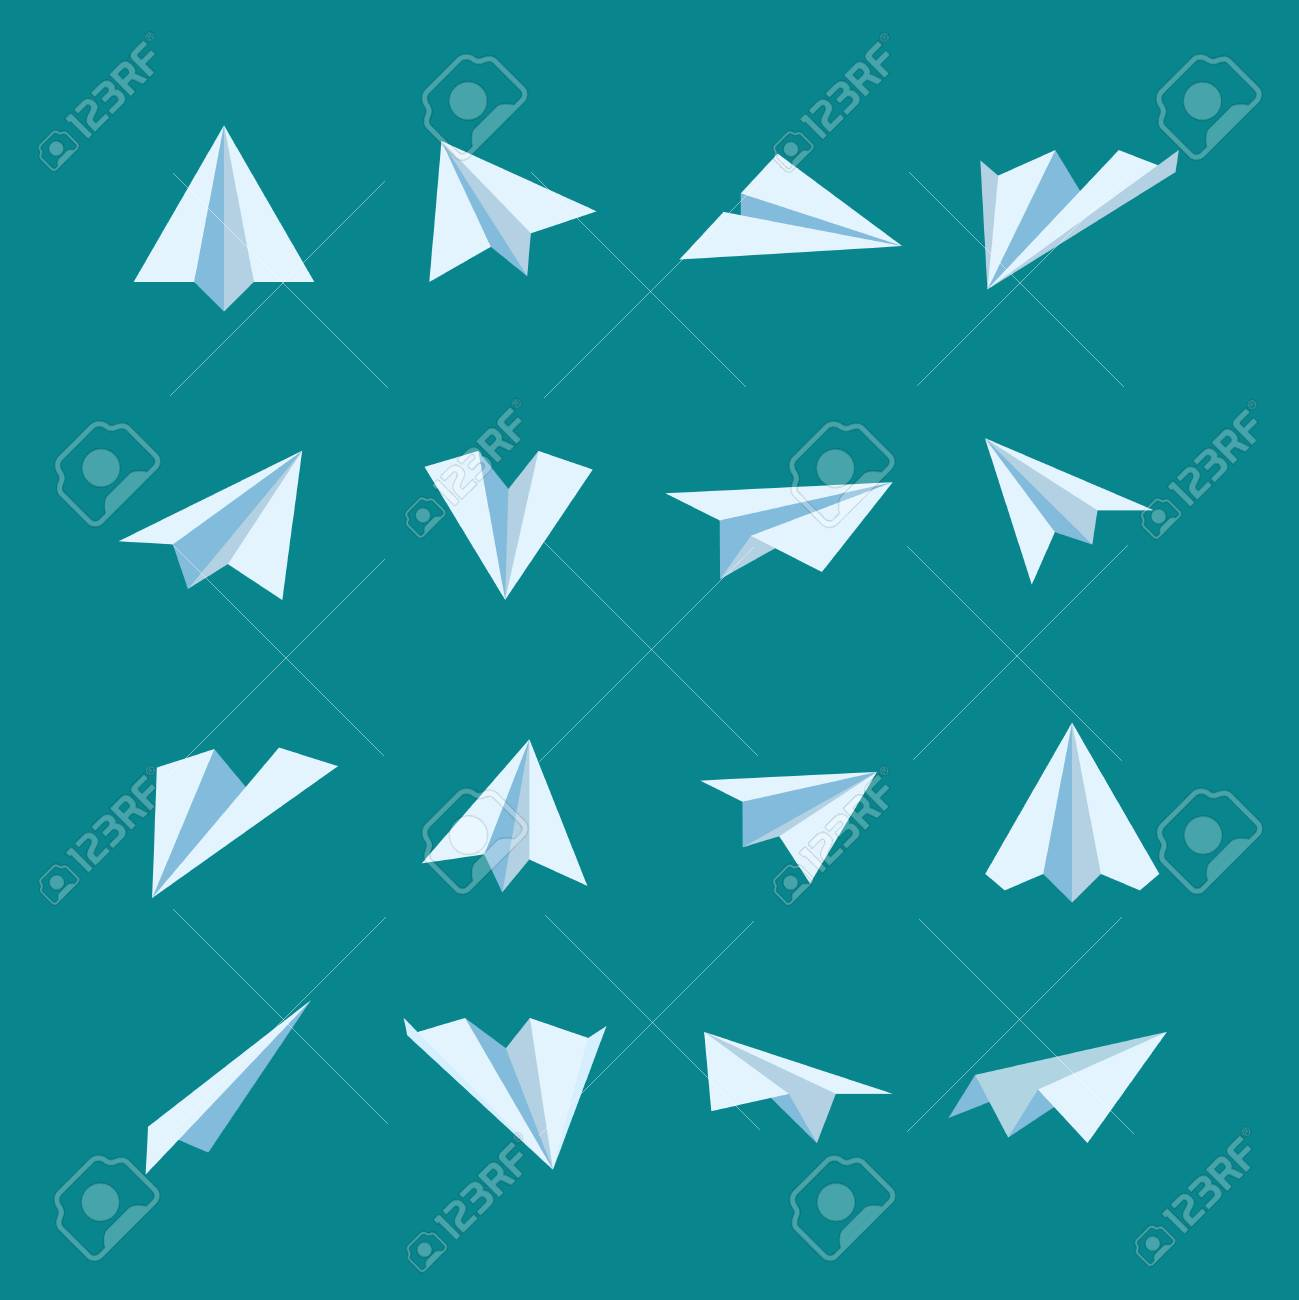 Paper Planes Flat Vector Icons Set Origami Airplane And Aircraft Illustration Stock